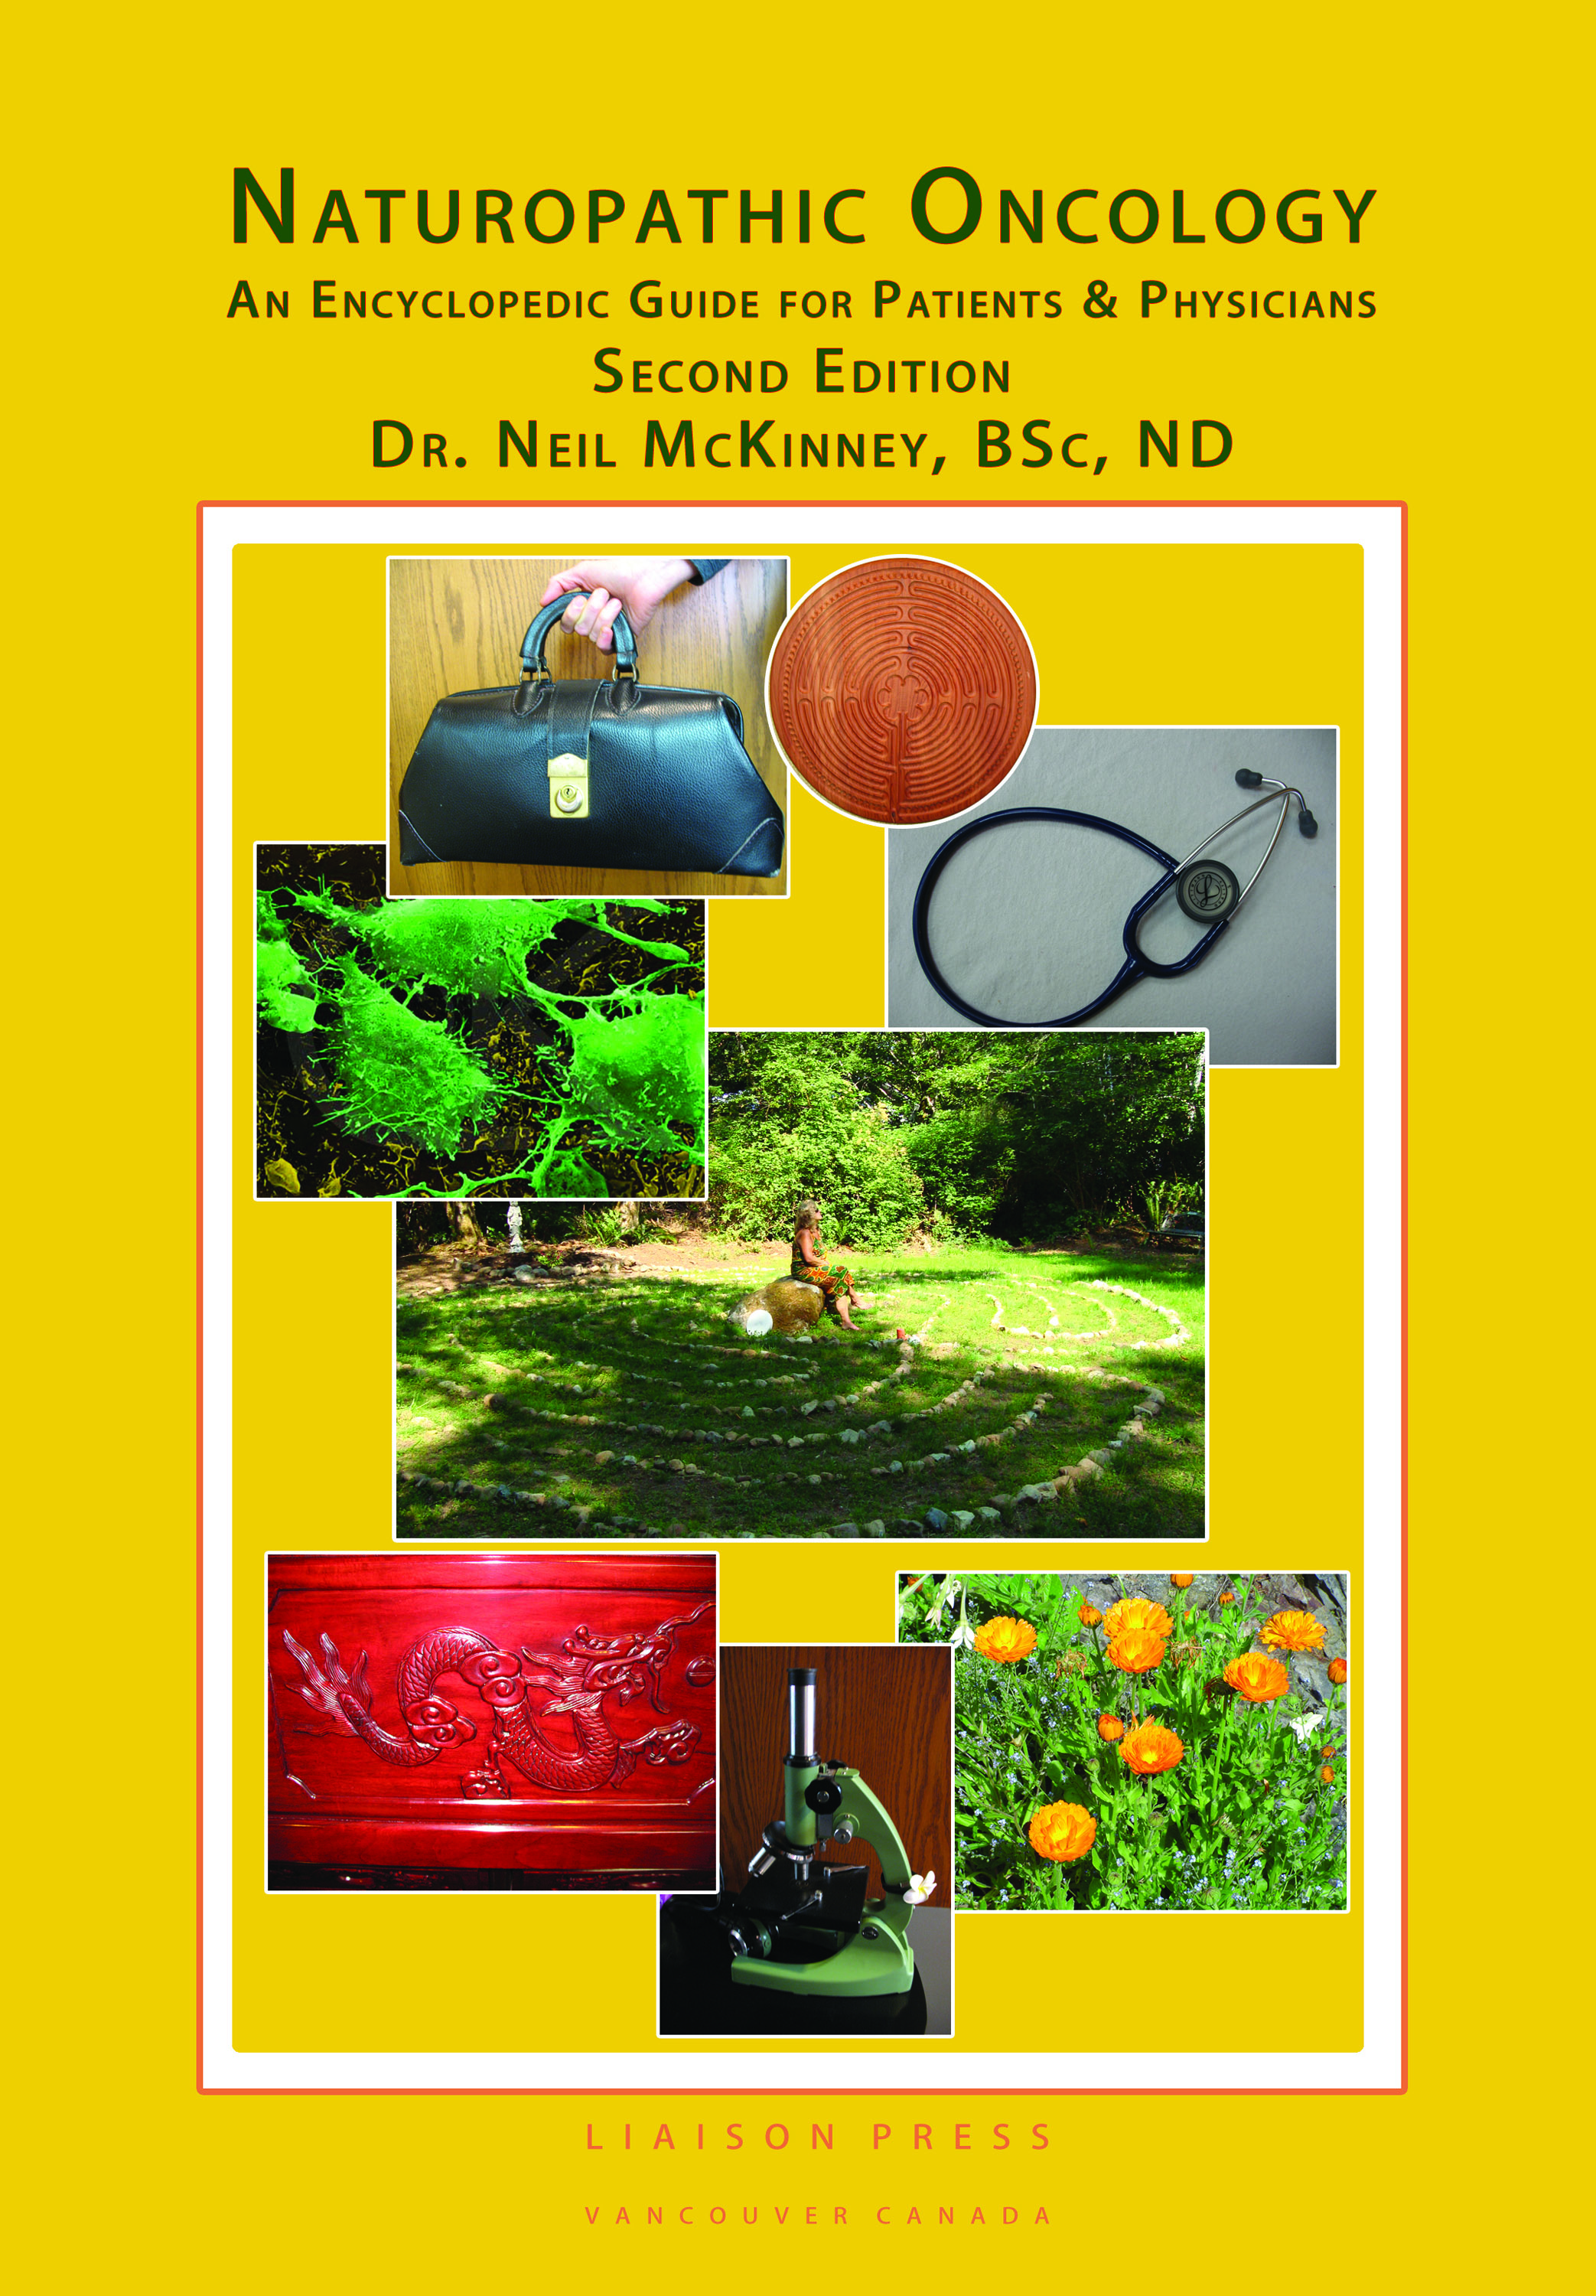 Dr McKinney Naturopathic Oncology 2nd Edition